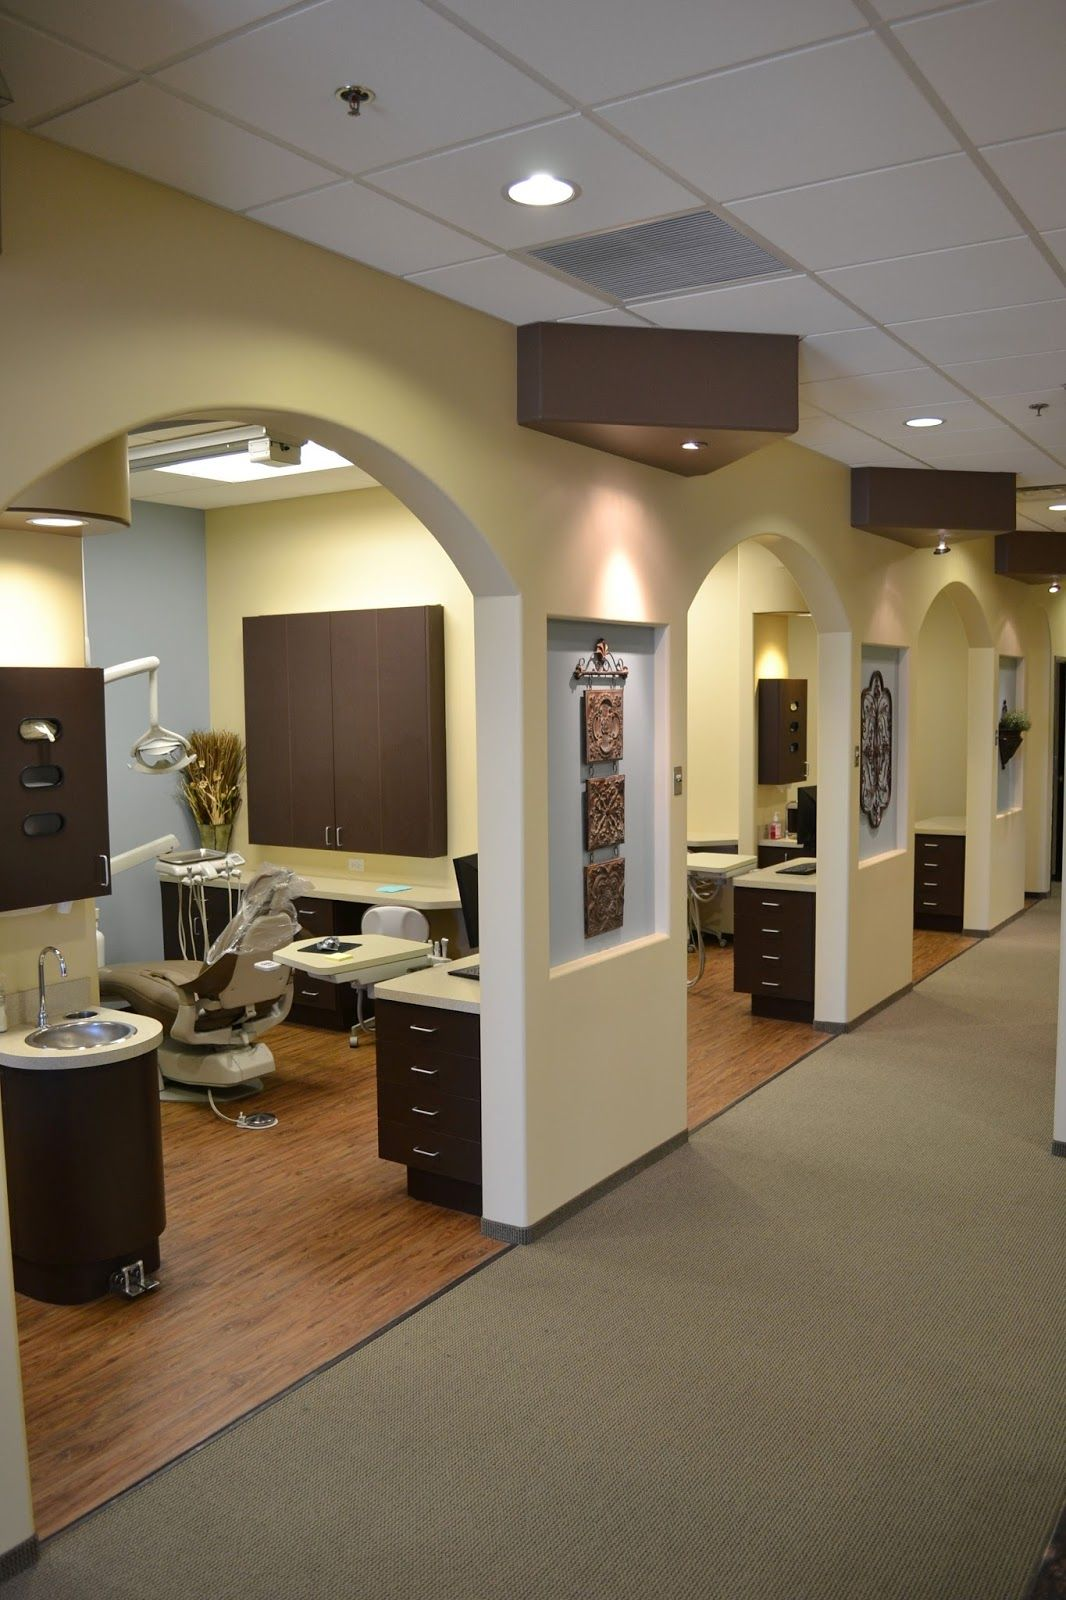 Good looking dental office design ideas home design 406 for Interior design of office